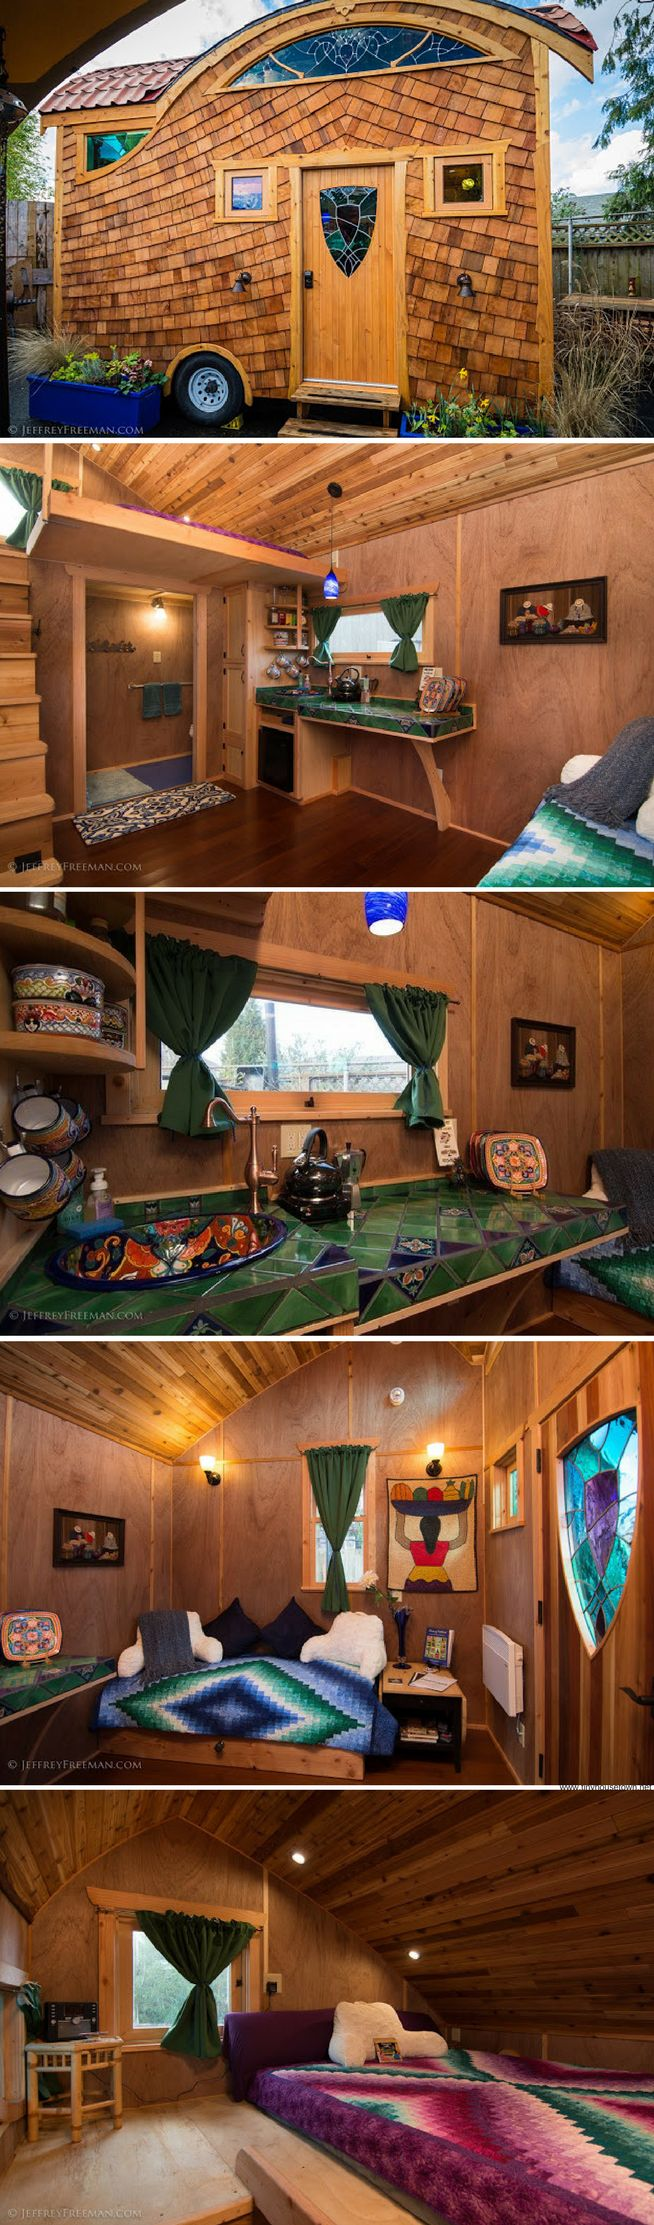 The Pacifica Tiny House (160 sq ft)